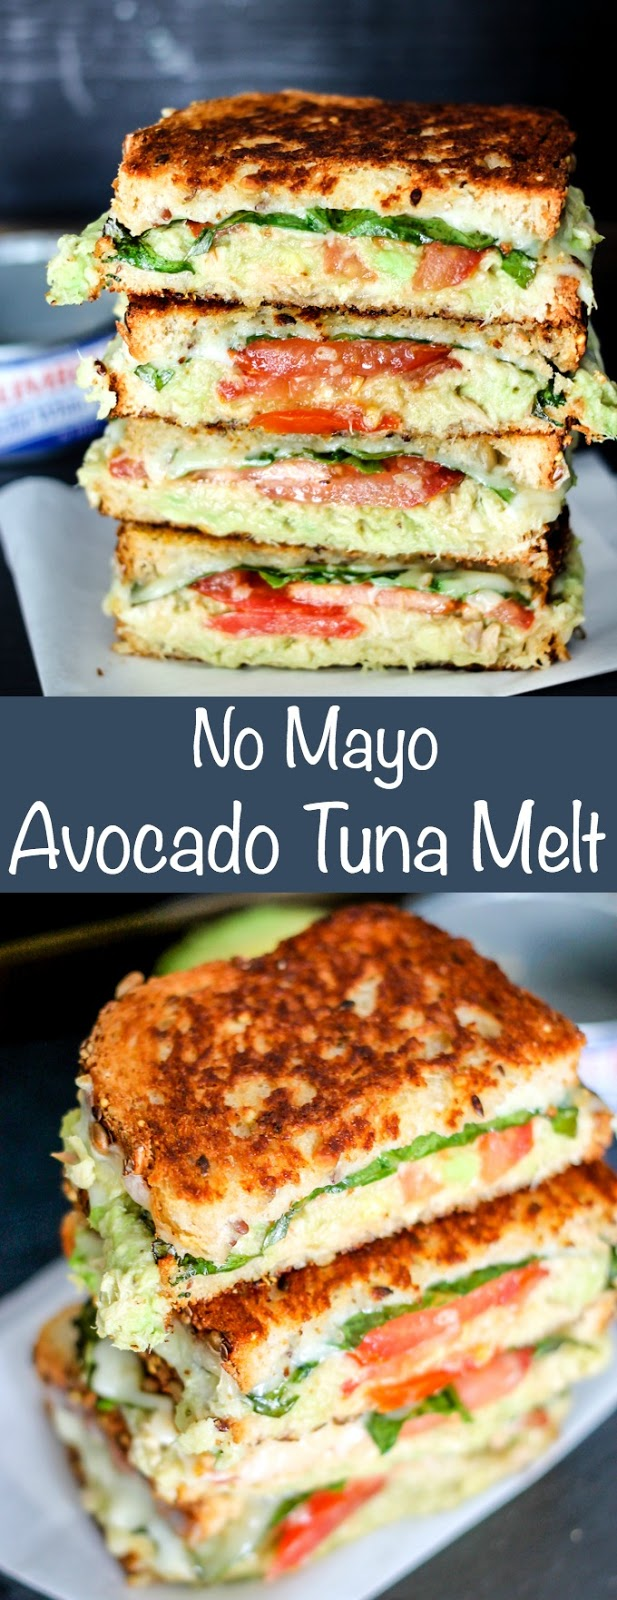 No May Avocado Tuna Melt